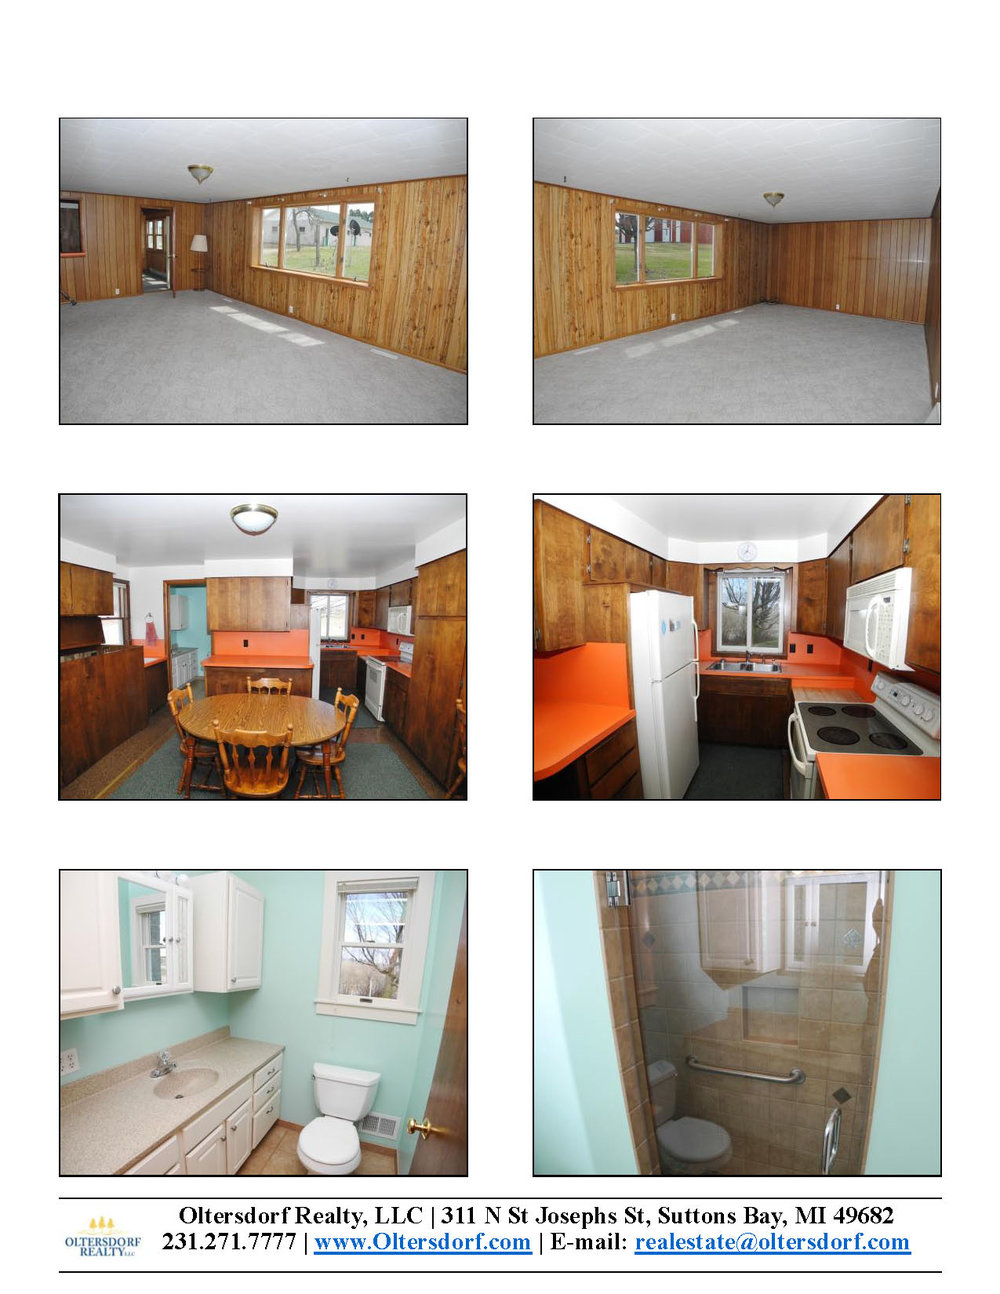 910 S Popp Road, Lake Leelanau - For sale by Oltersdorf Realty LLC (photo pages)_Page_06.jpg